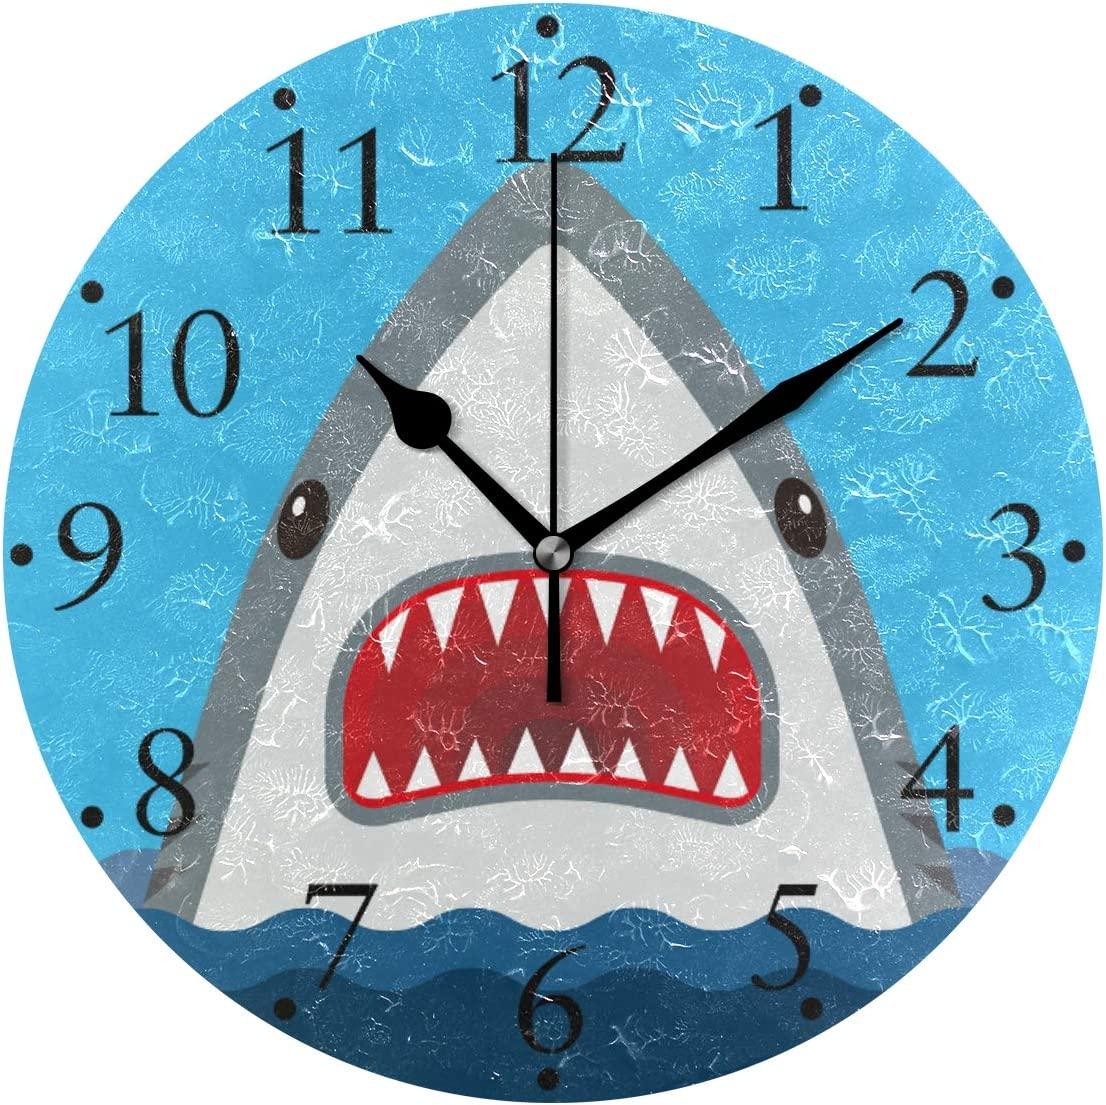 VIKKO Shark with Open Mouth Ocean Animal Wall Clocks Battery Operated Home Decorative Round Wall Clock 9.4 Inch Kitchen Bedroom Living Room Classroom Office Clock